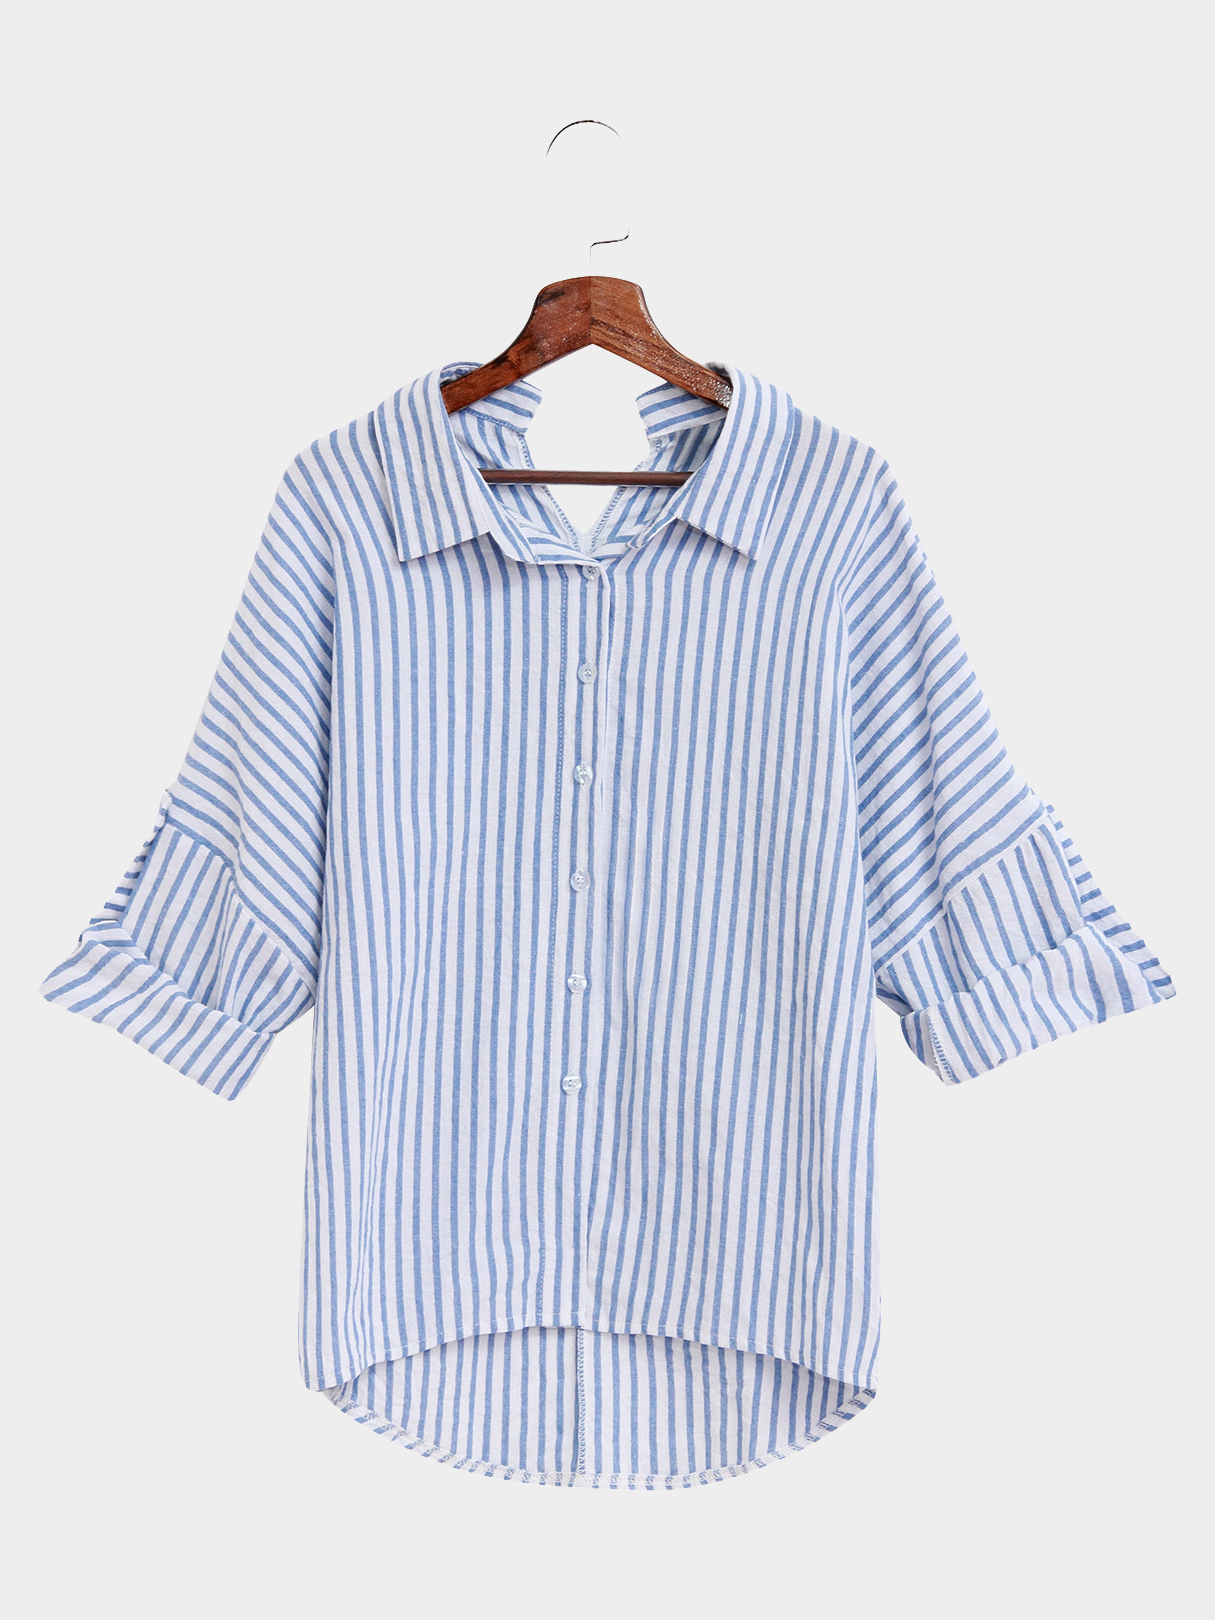 Casual Stripe Pattern Shirt In White And Blue blue and white stripe pattern shirt in fashion design